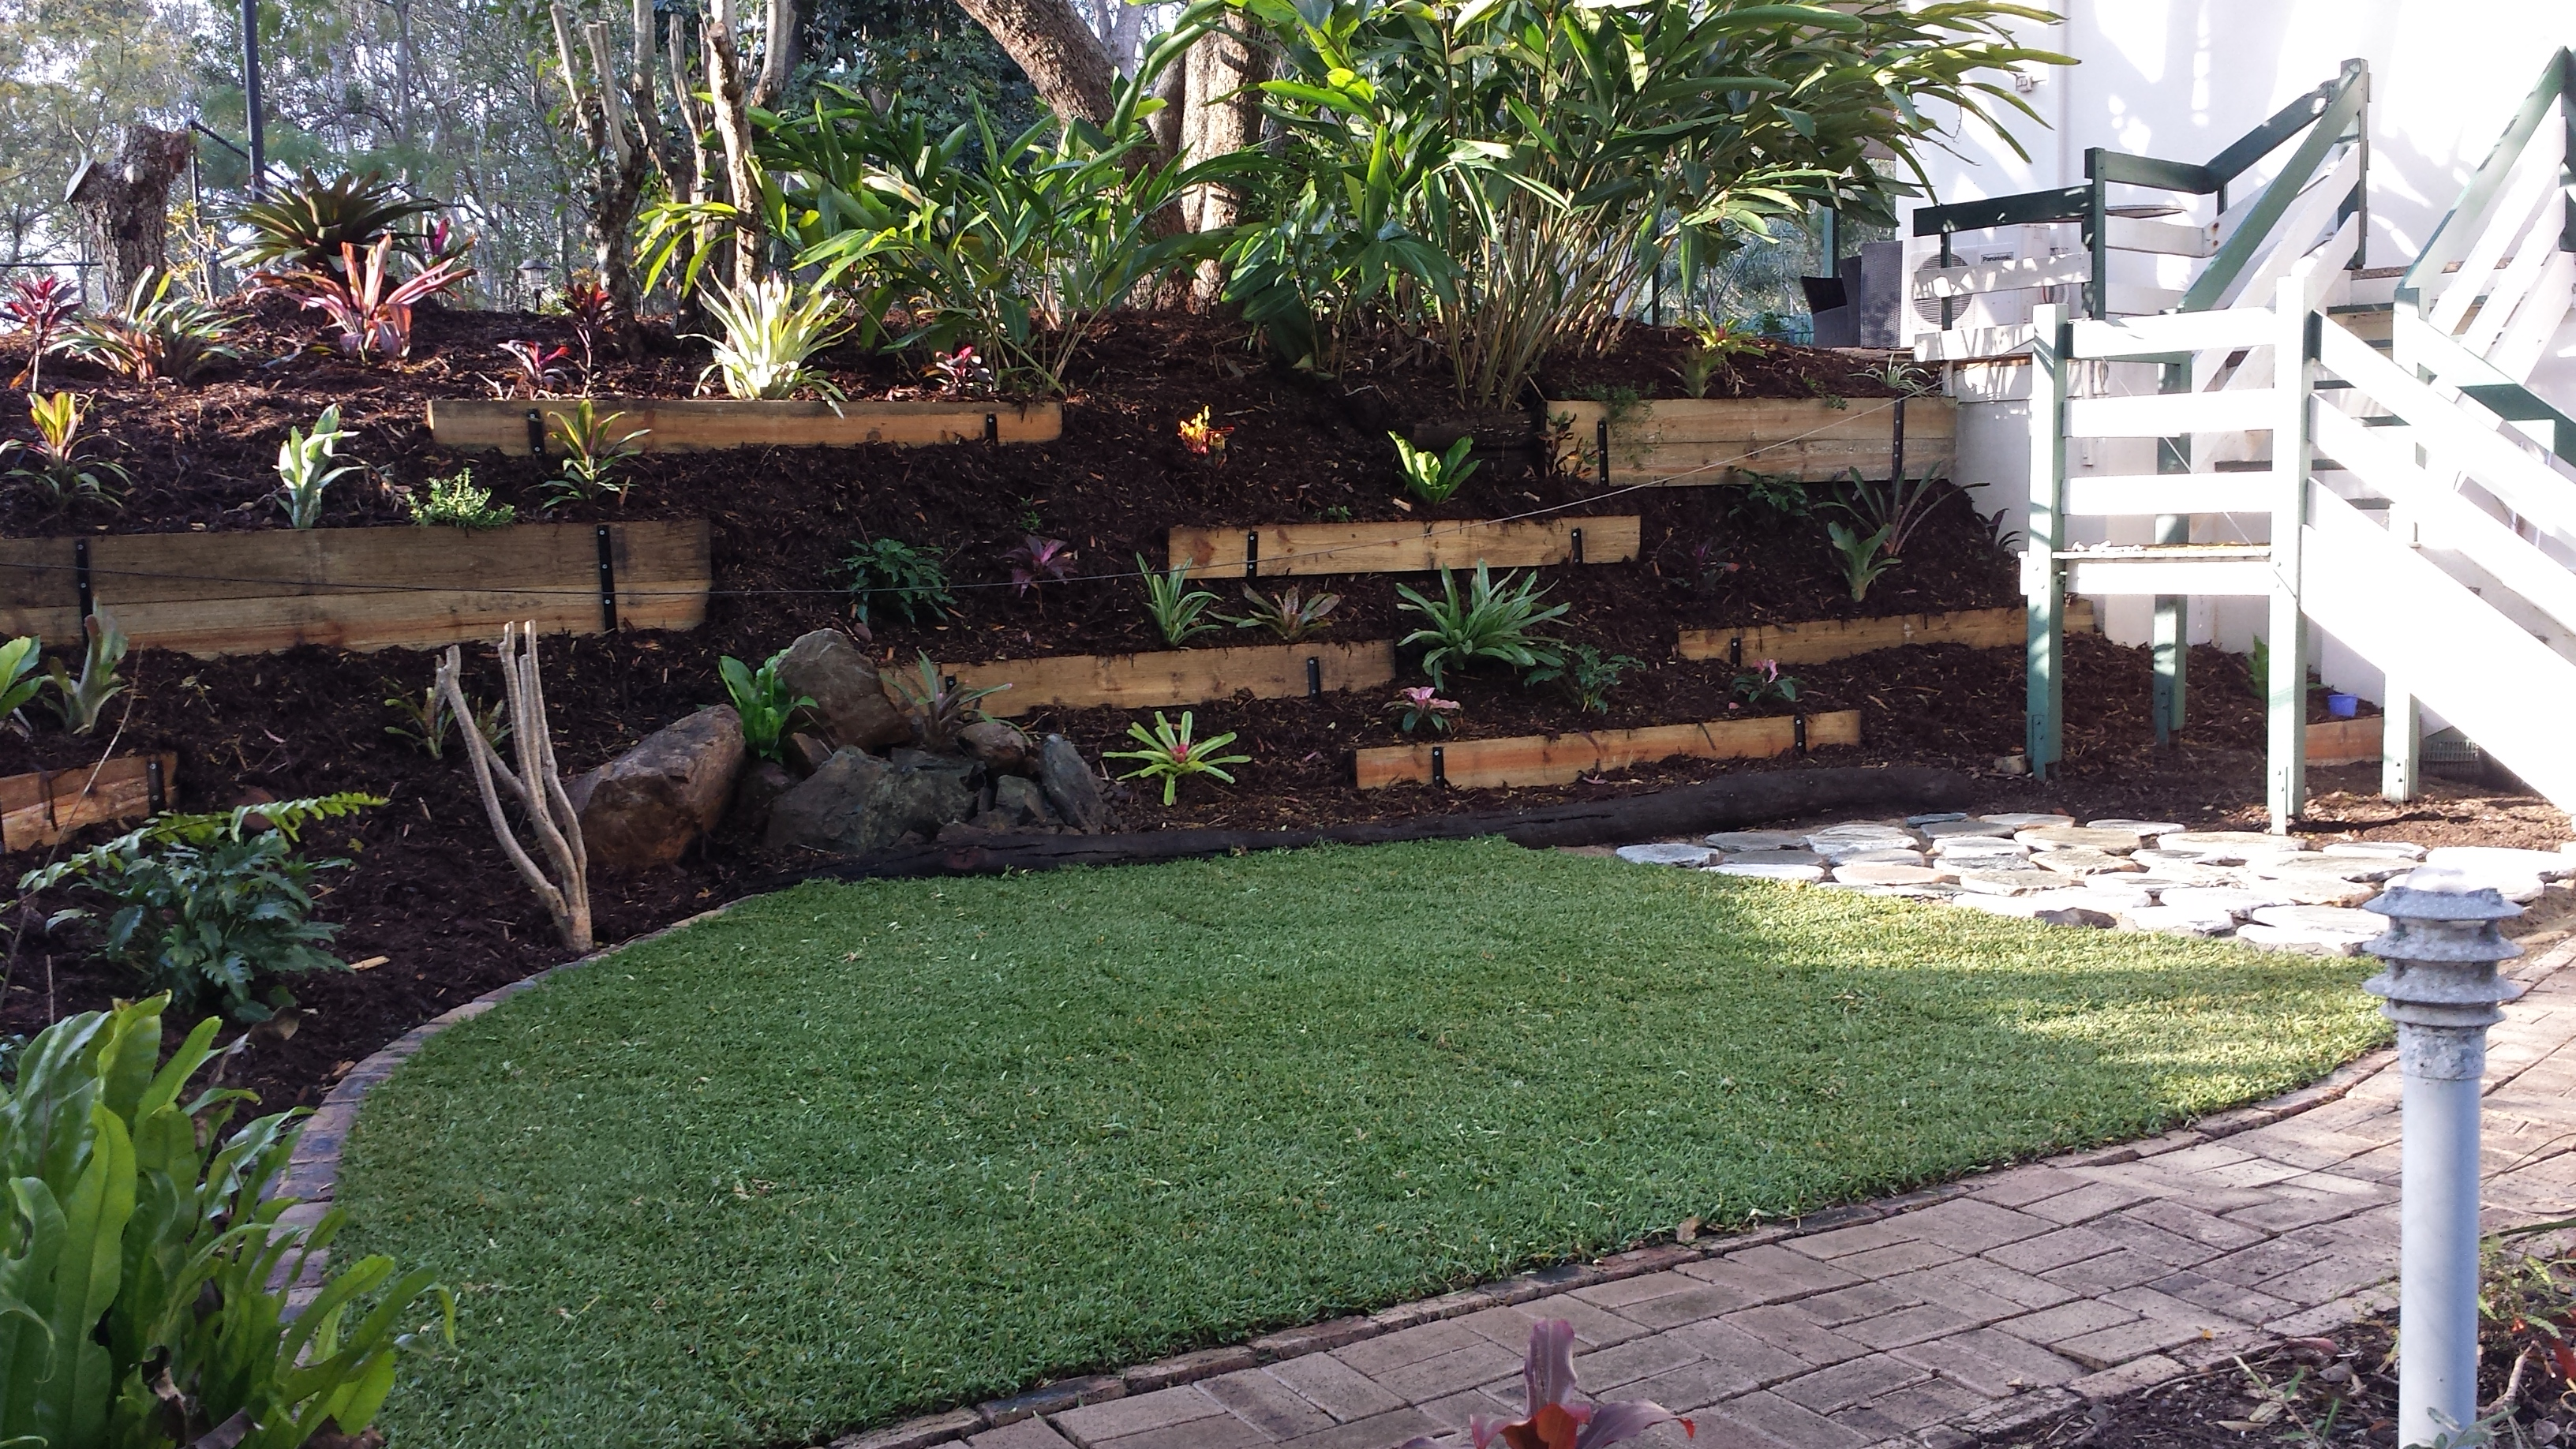 Garden designs garden ideas in brisbane queensland au for Garden designs brisbane